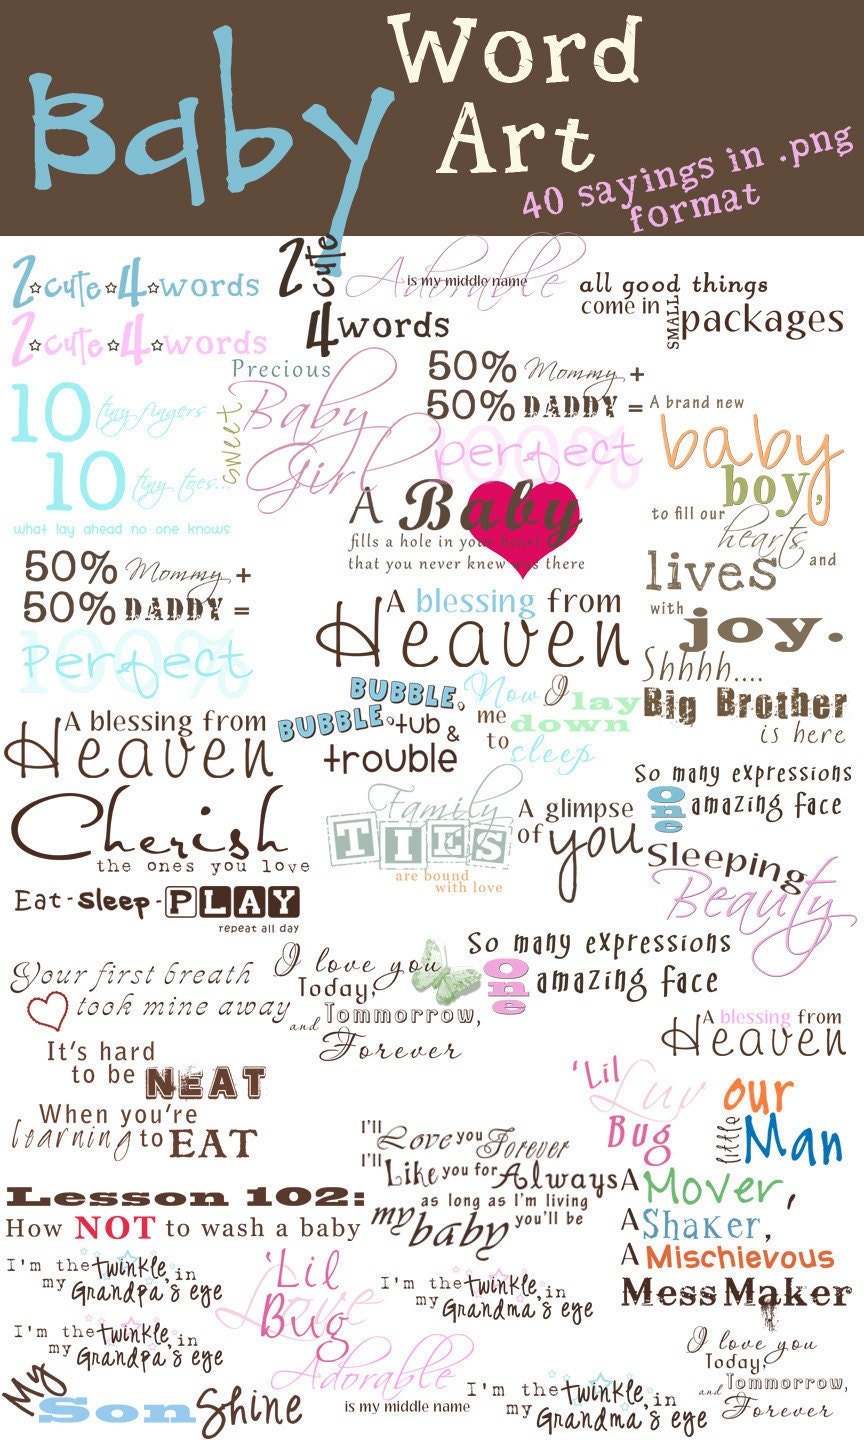 How to scrapbook words - Instant Download Baby Word Art Collection 40 Sayings For Collages Scrapbook Pages Cards Etc